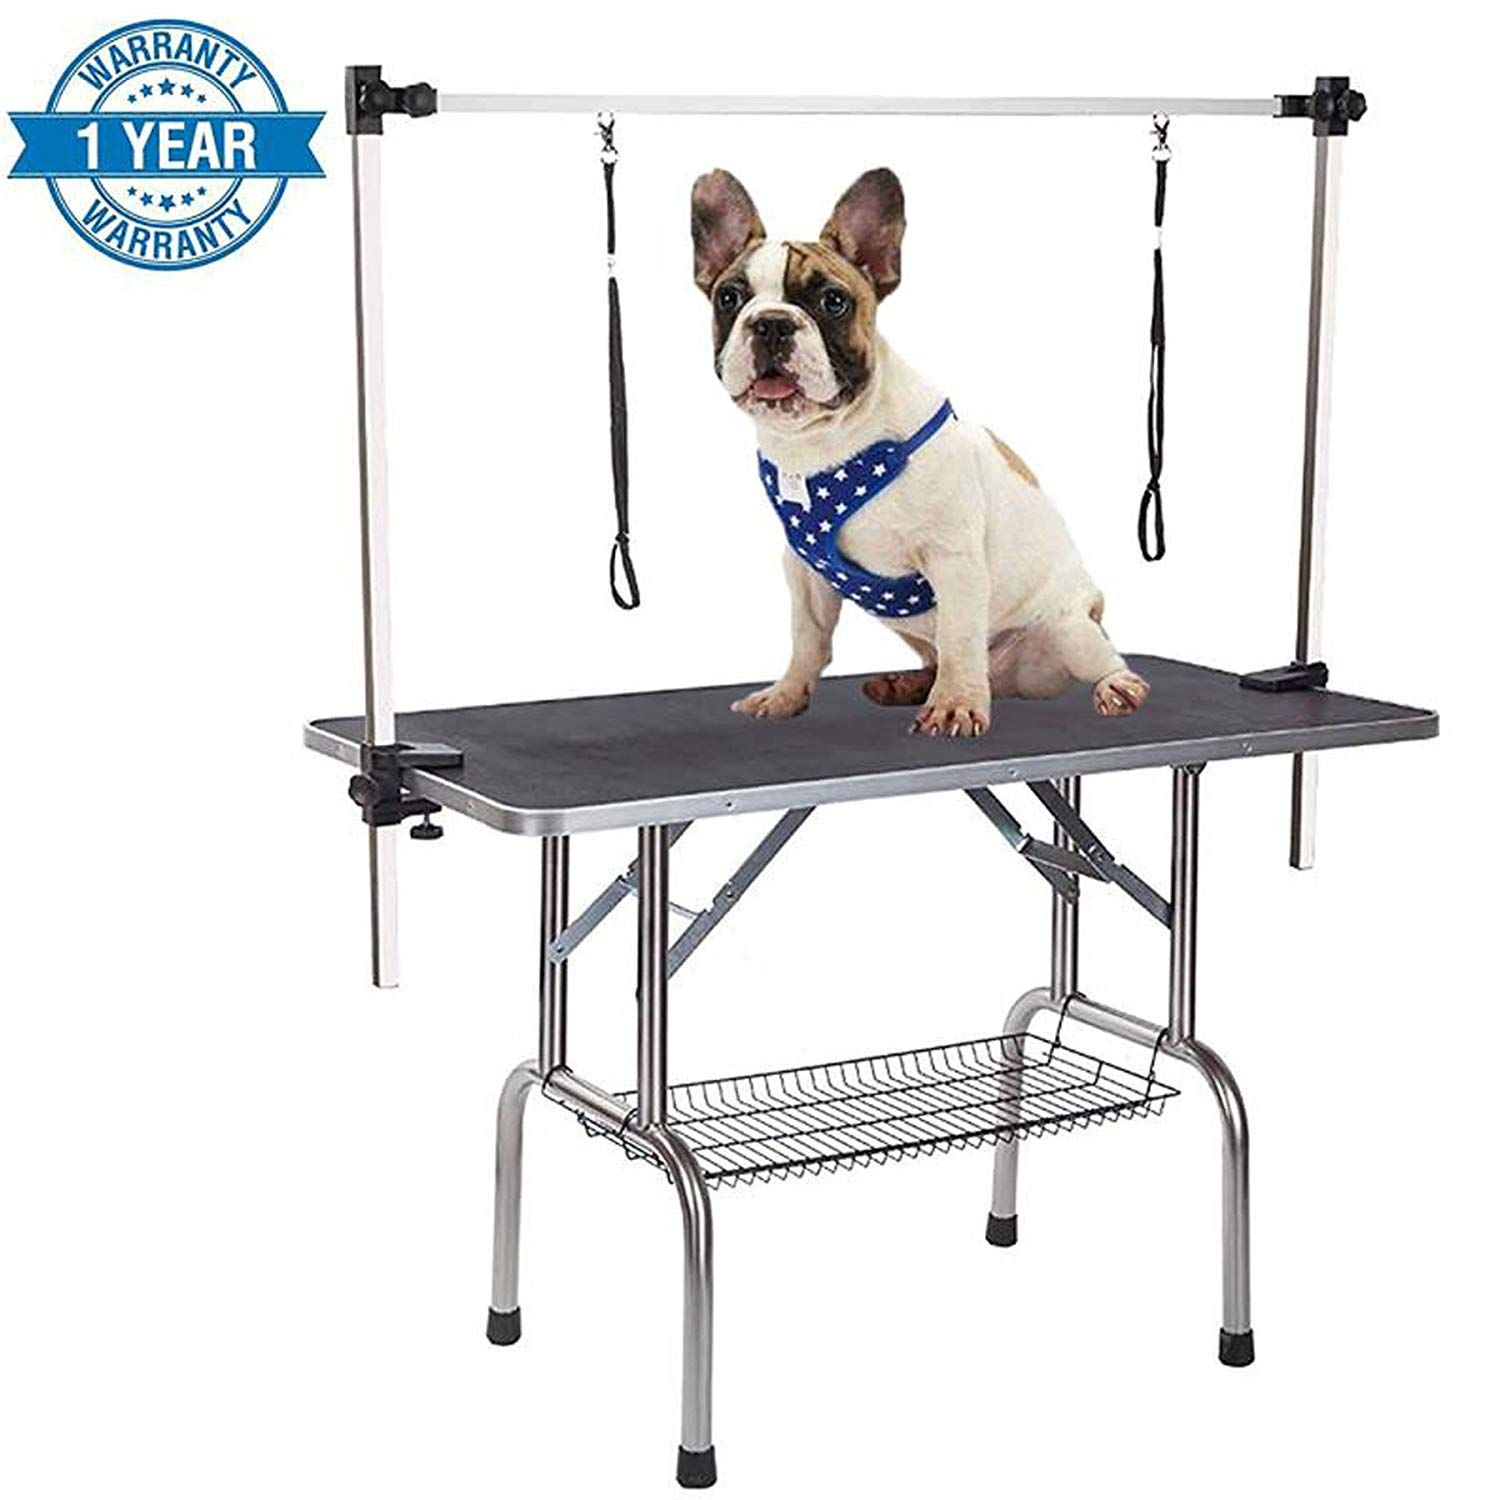 Gelinzon Grooming Table Pet Dog Cat Foldable Portable Adjustable Arm Clamp Very Nice Of You To Drop By To See The Image T Dog Grooming Dogs Pet Grooming